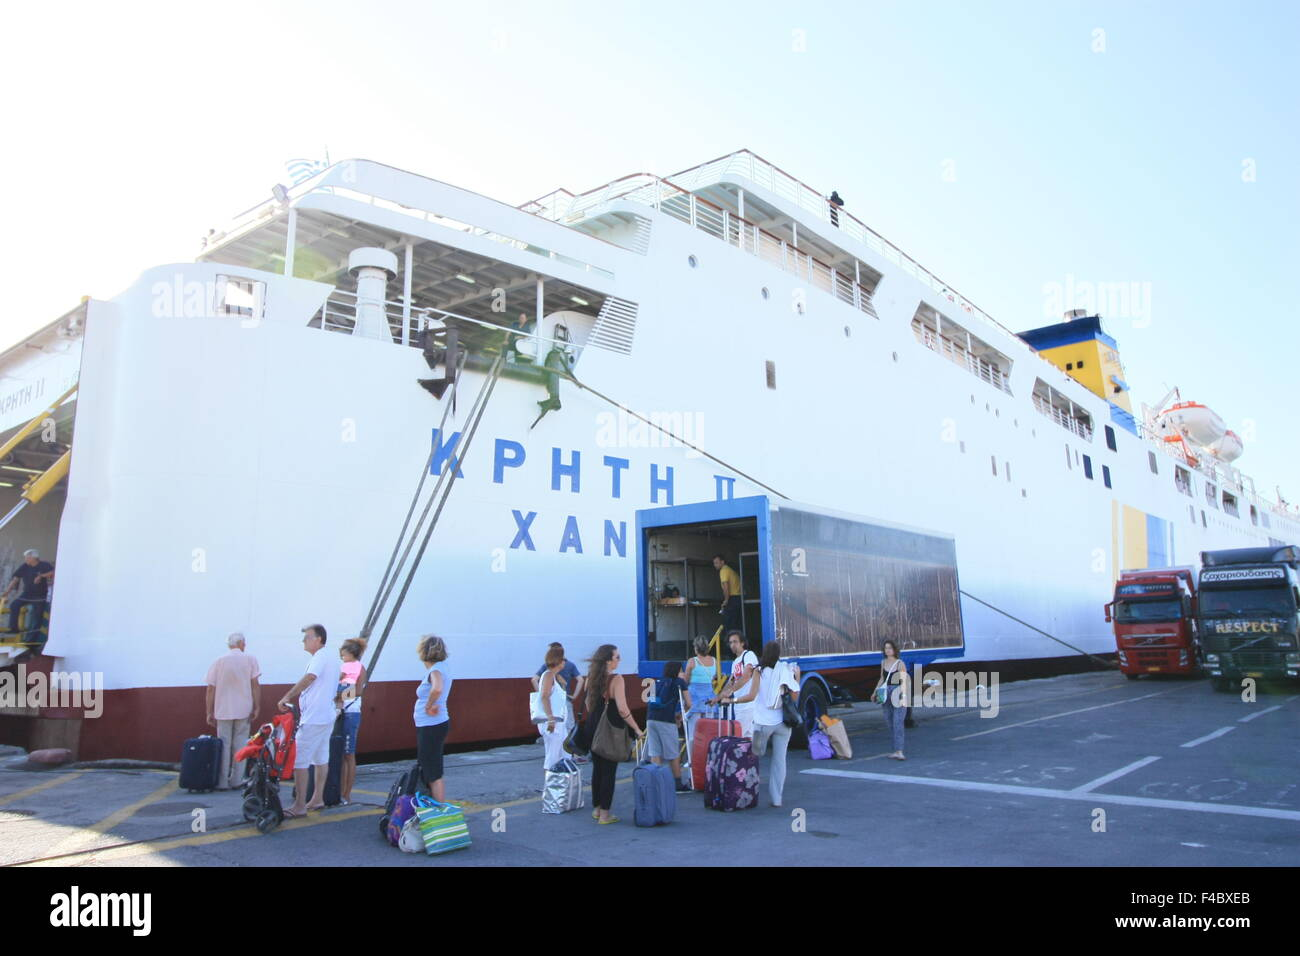 Passengers of the ferry going to Athens - Stock Image